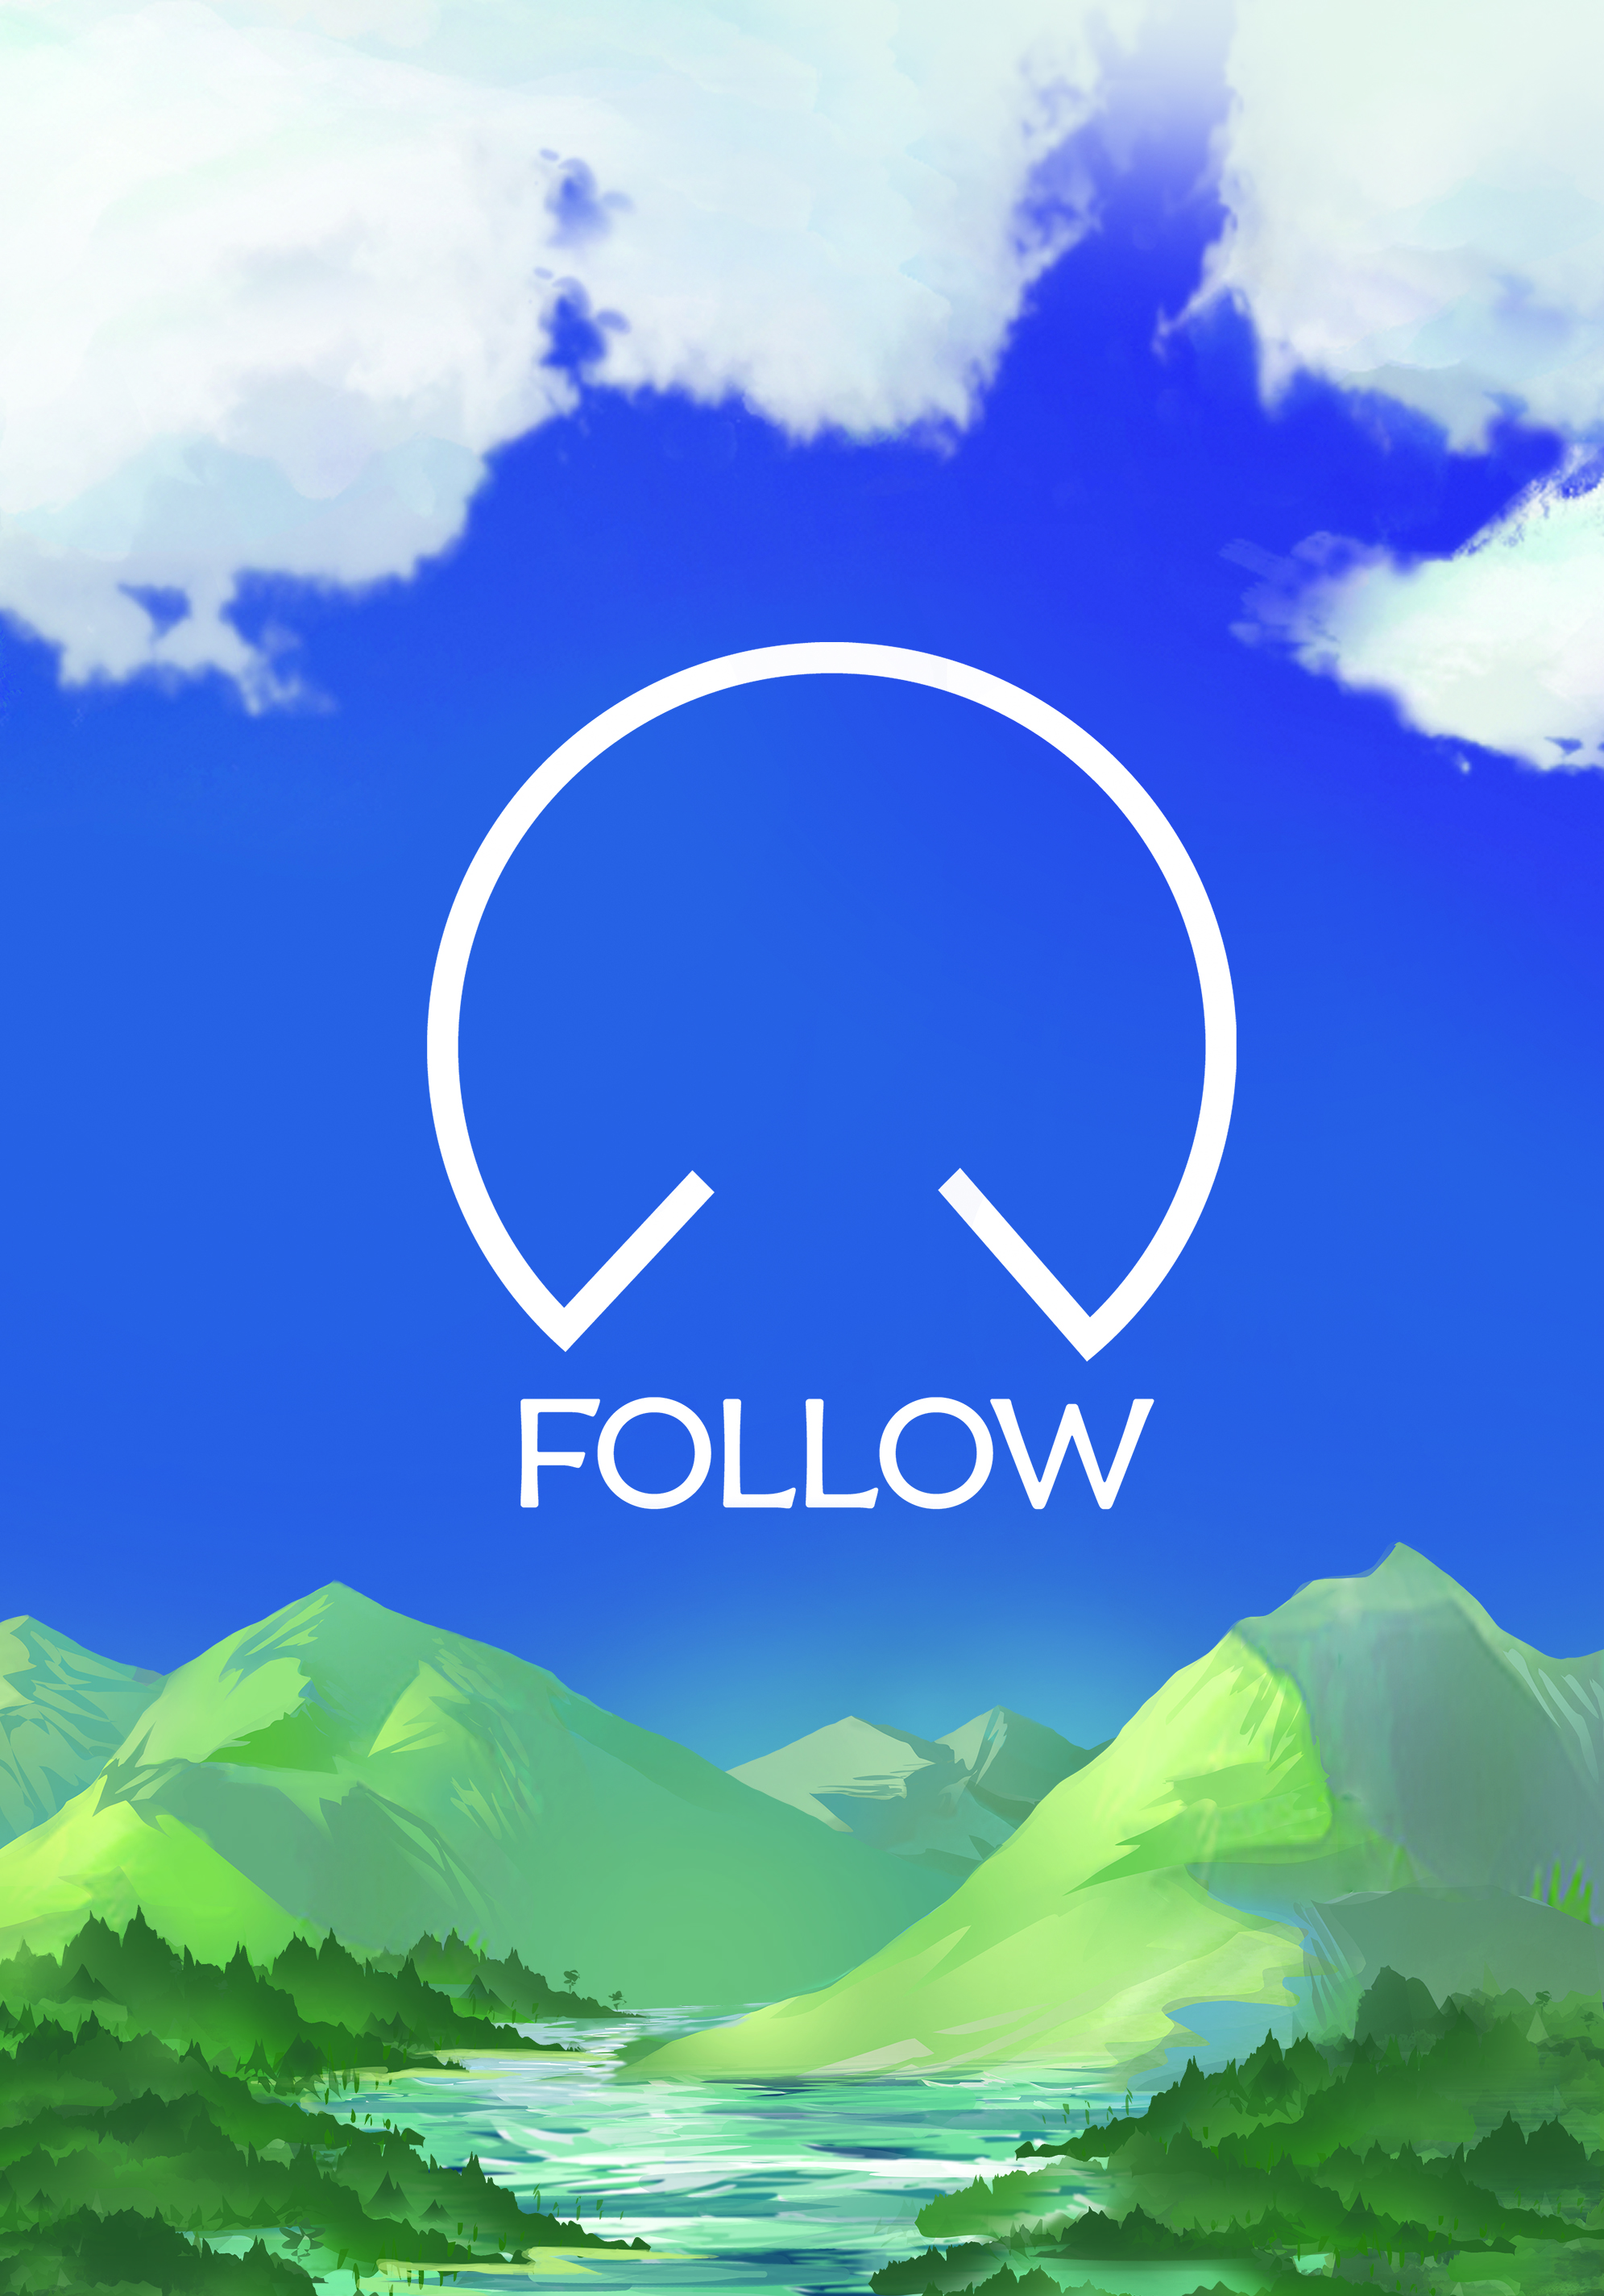 Follow - Follow is a tabletop game created by Ben Robbins. The game narrative is centered around a quest, which presents the key question the game seeks to answer: will your group hold together or splinter?